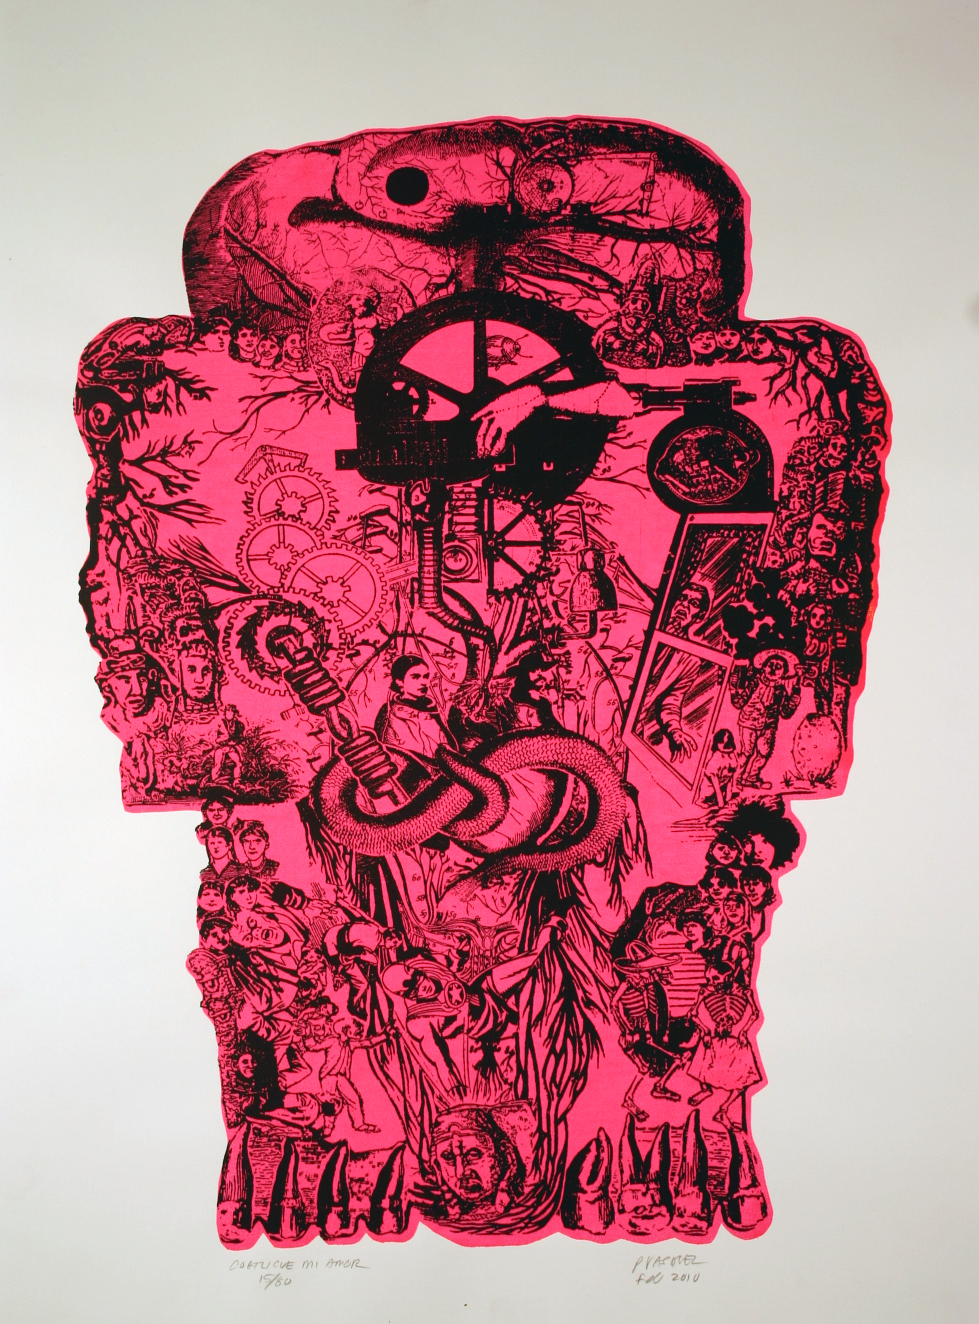 "Title: Coatlicue  Dimensions: 18"" x 24"" Medium: Silk screen printing Date: 2010 Notes:  The outer contours of the Aztec earth deity Coatlicue unify a multitude of smaller images that connect to themes of Mexican history, American hegemony, Spanish colonialism and the dichotomy between Nature and machine. The viewer is encouraged to think of national identity as an organic whole shot through with channels, veins and branches interconnecting the disparate parts."